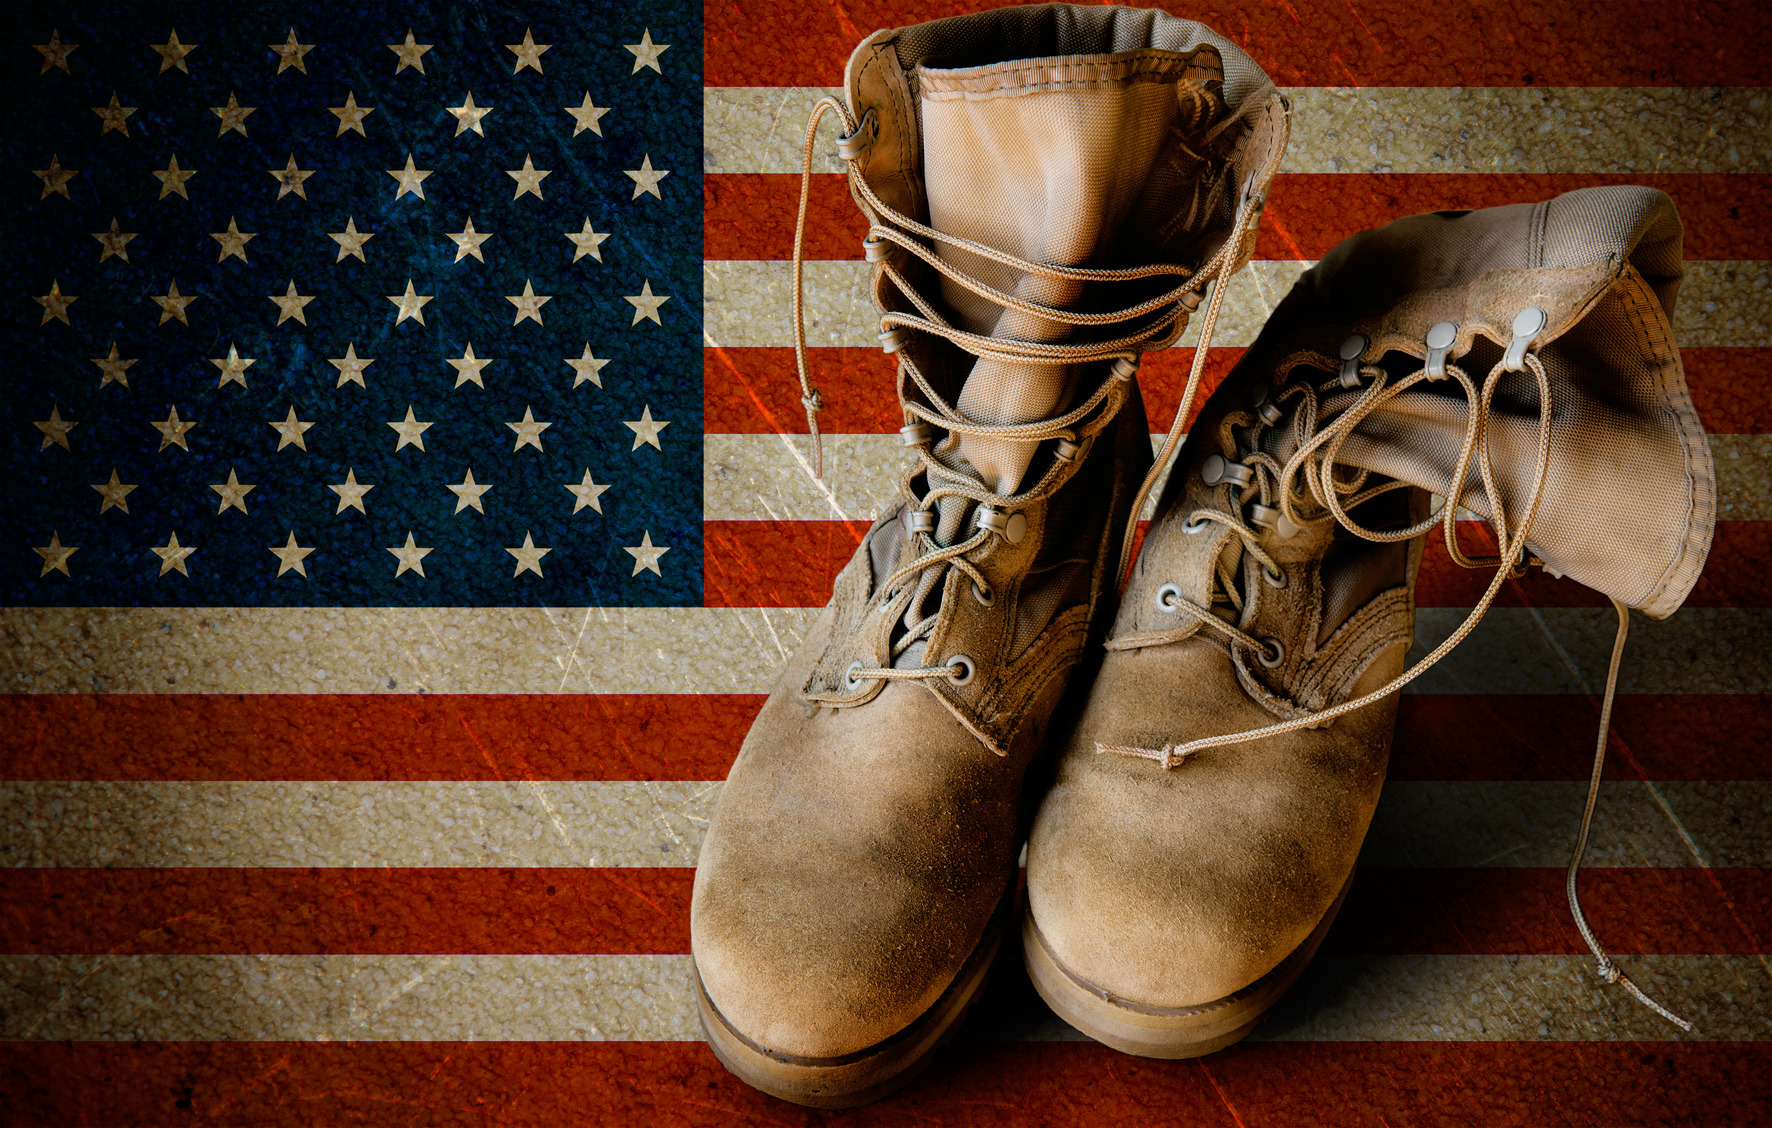 photodune-5031422-army-boots-on-sandy-flag-background-m.jpg